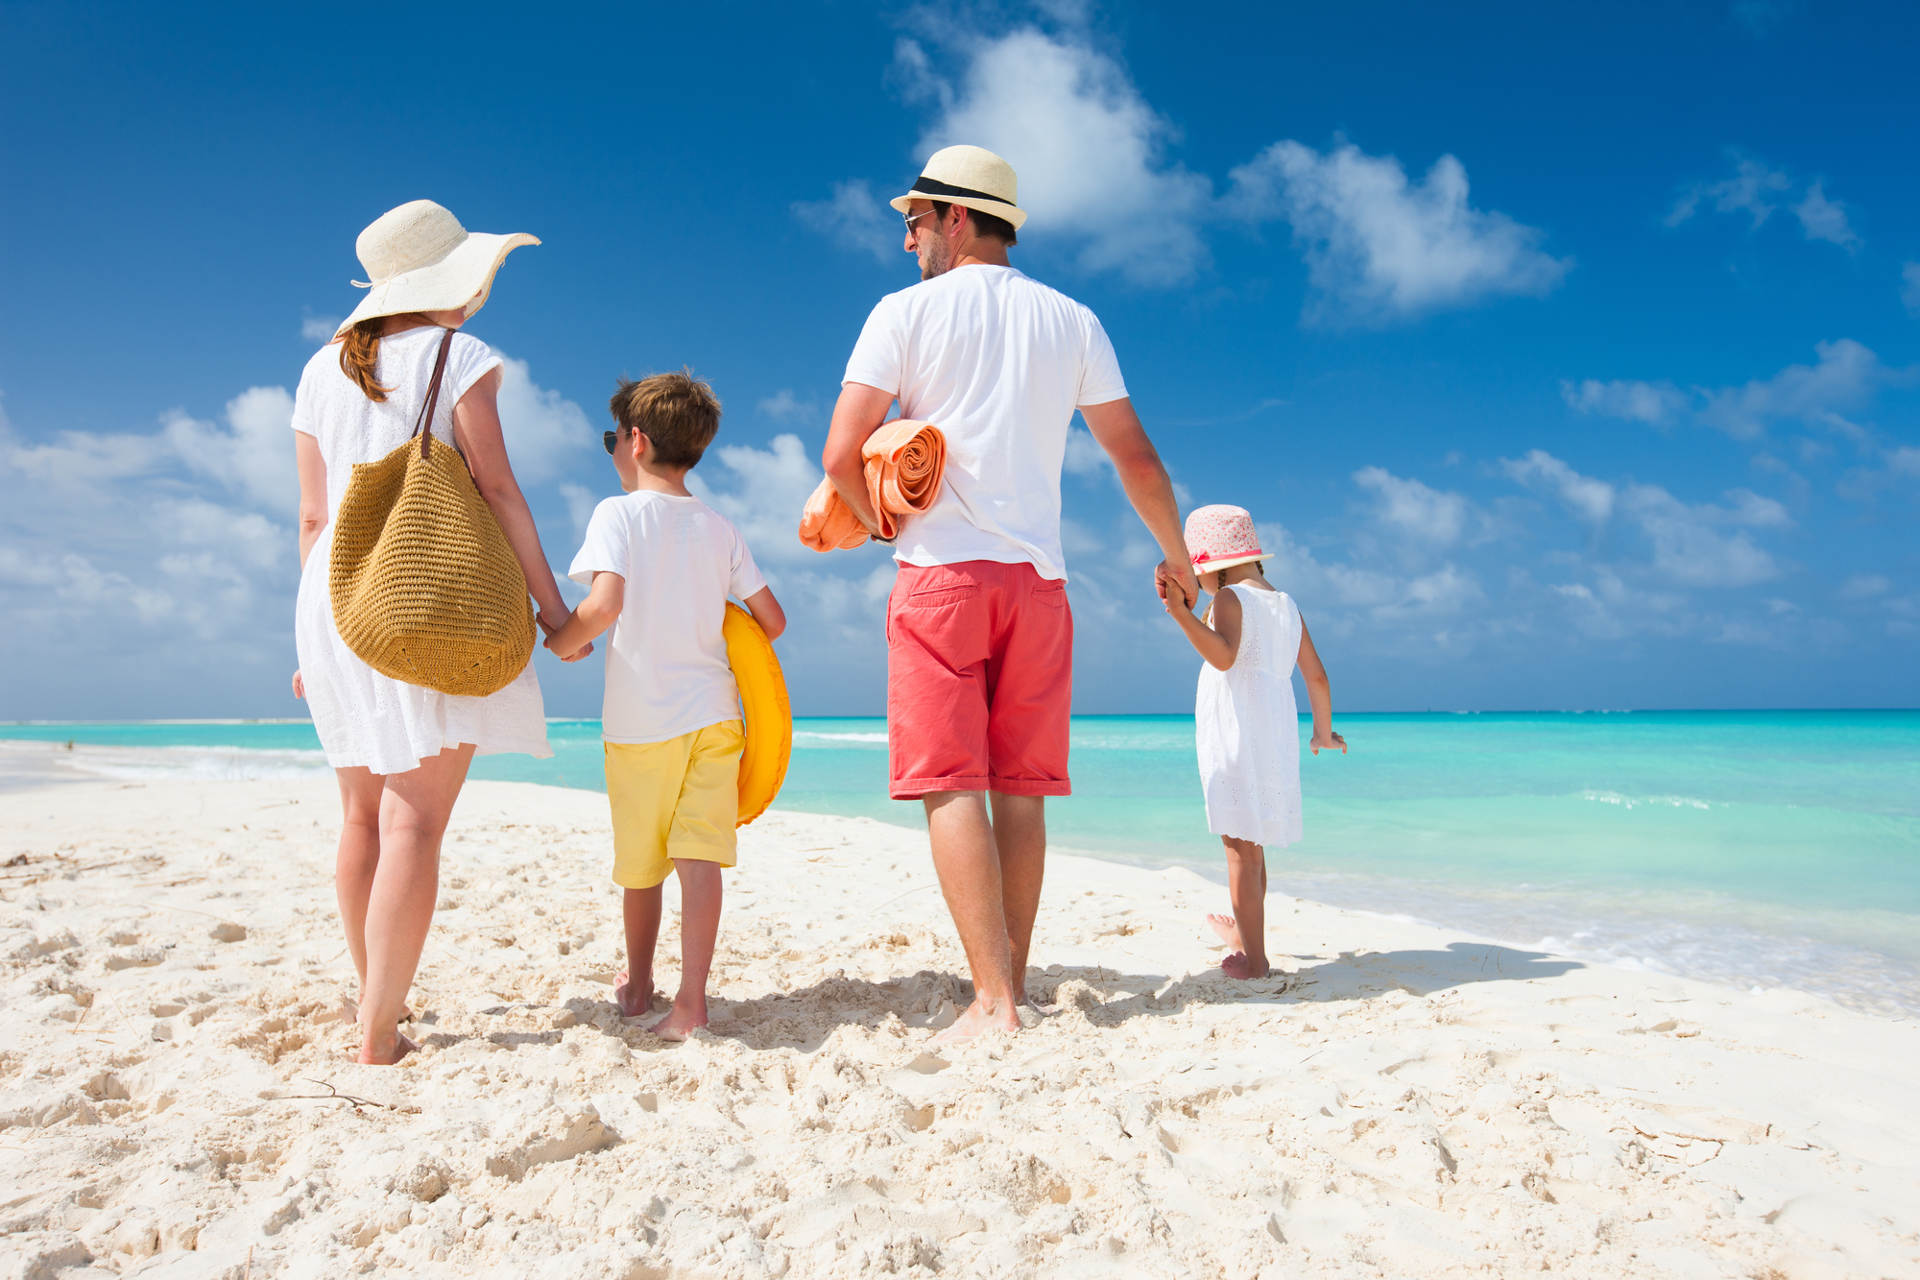 Should Parents Have Priority Over Non-Parents For Leave During School Summer Holidays?